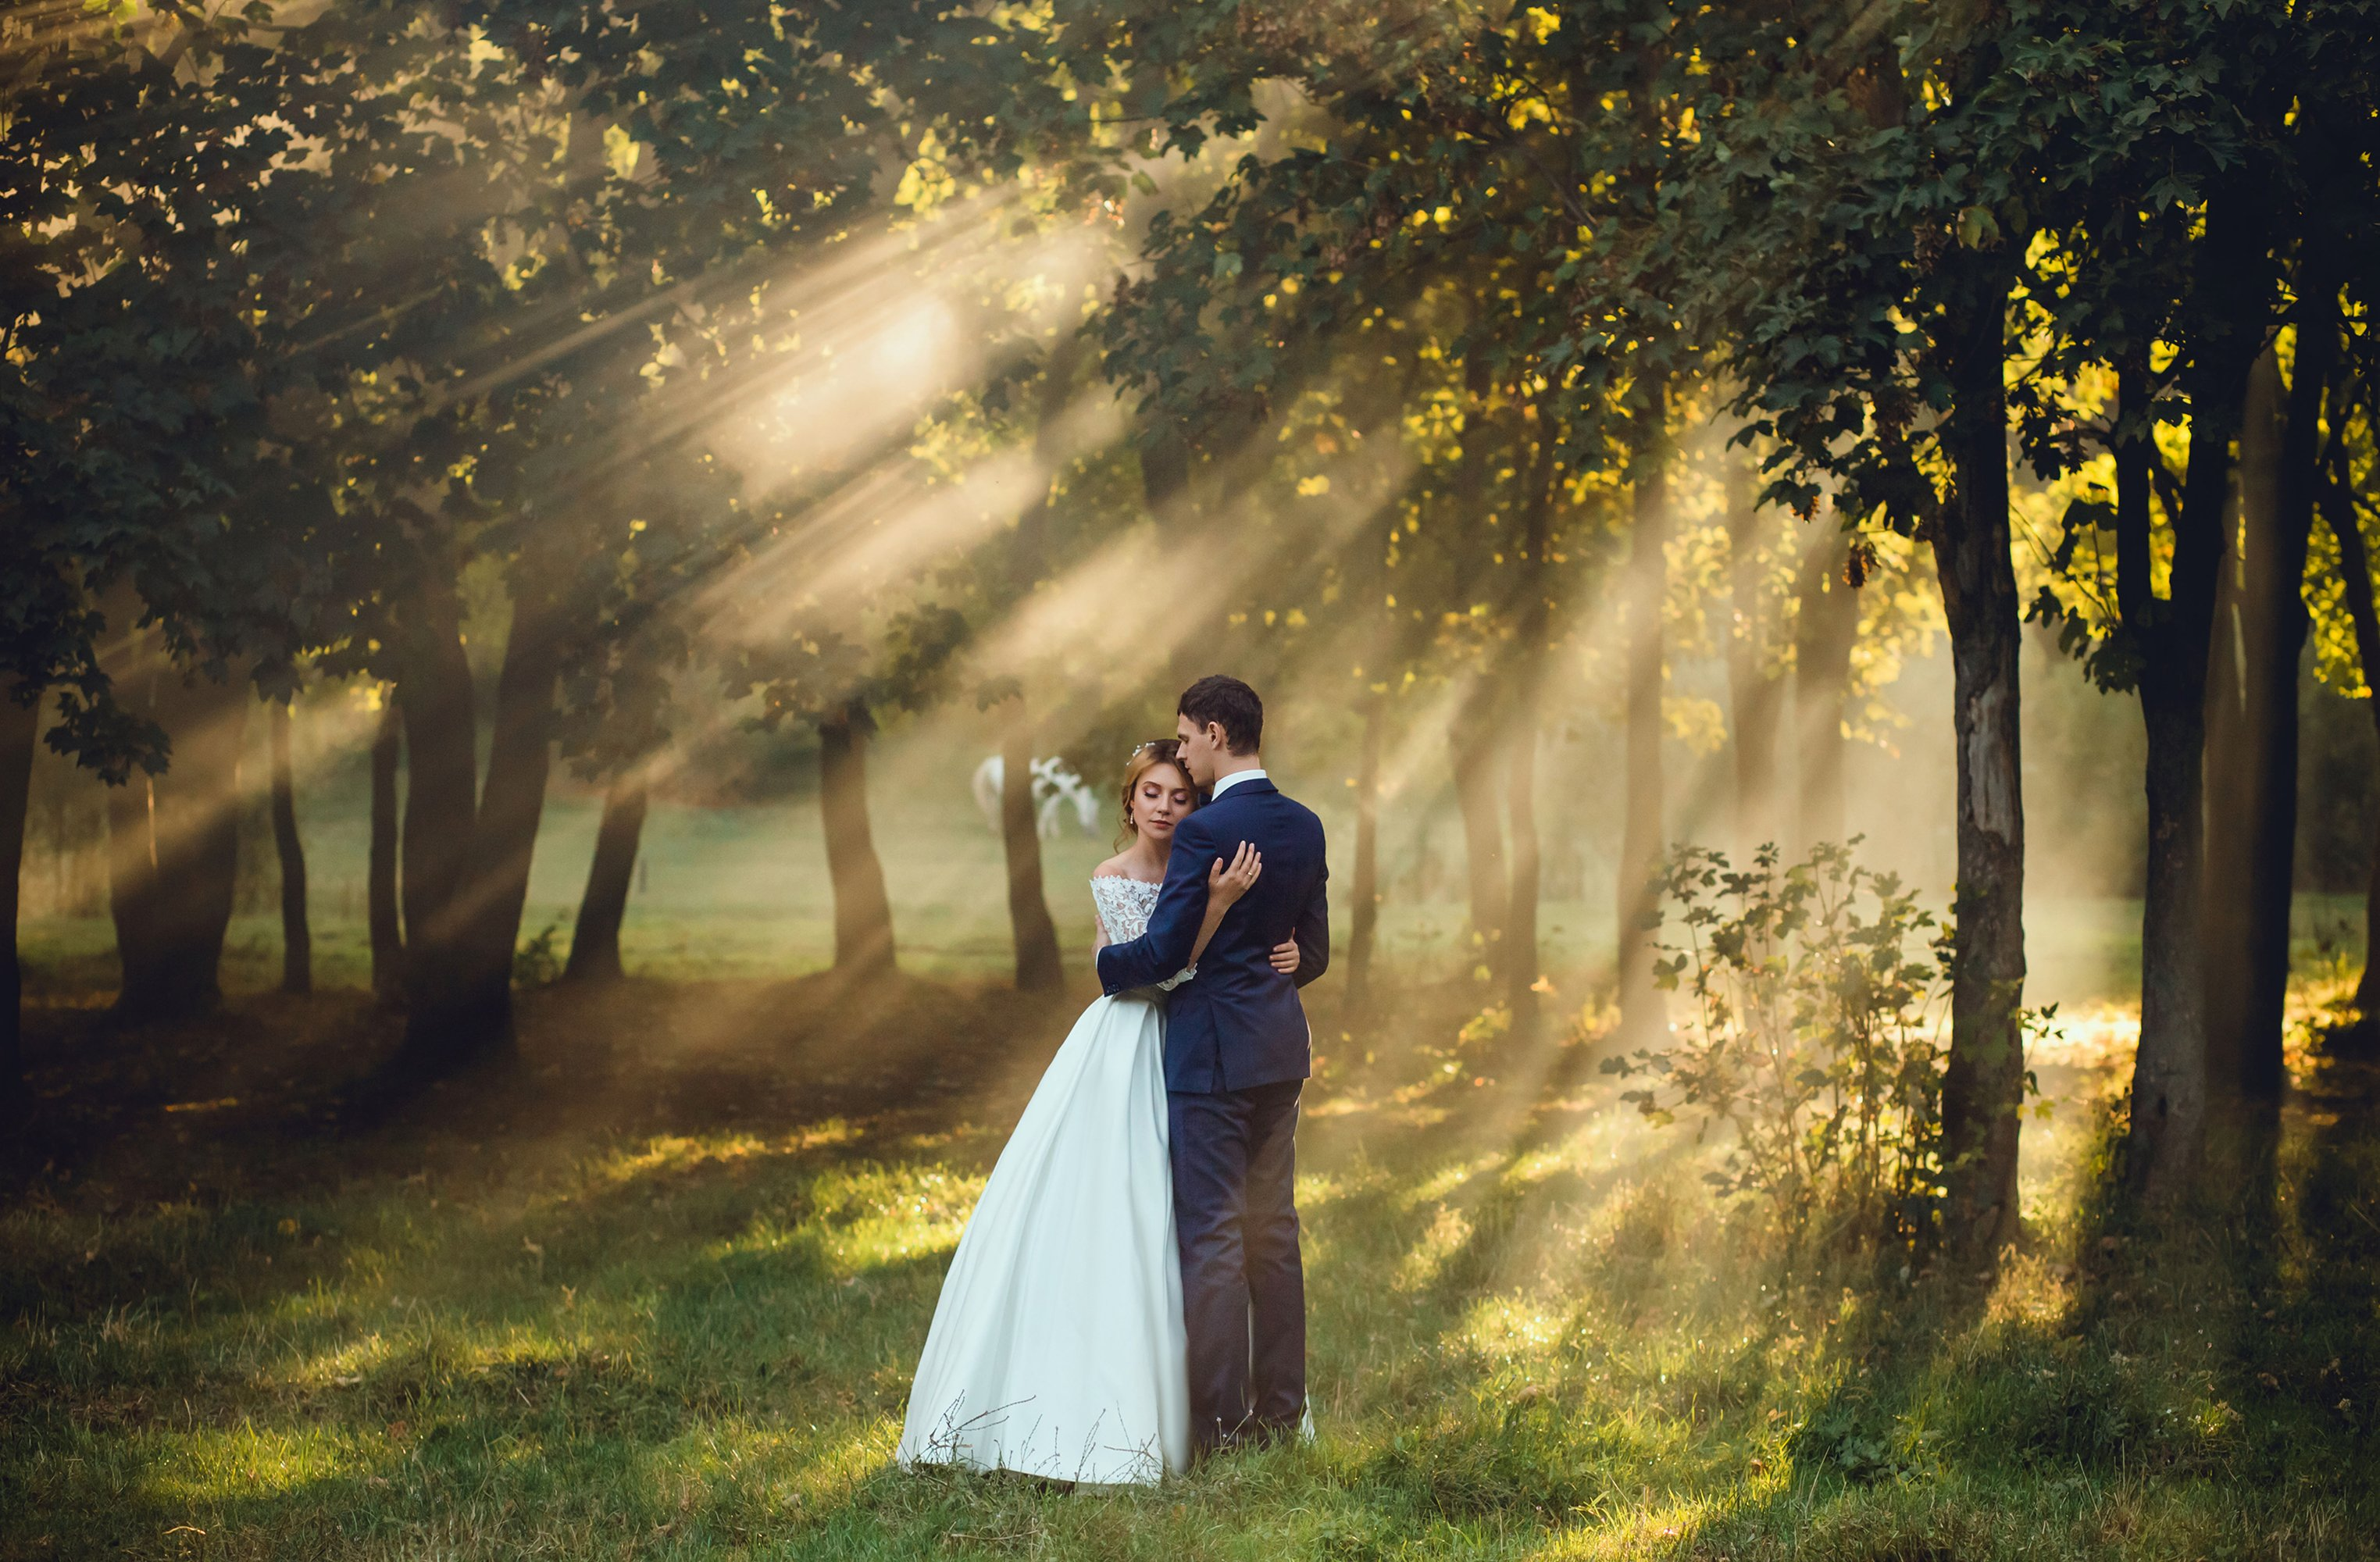 Mosquito Control For Your Outdoor Wedding - Featured Image